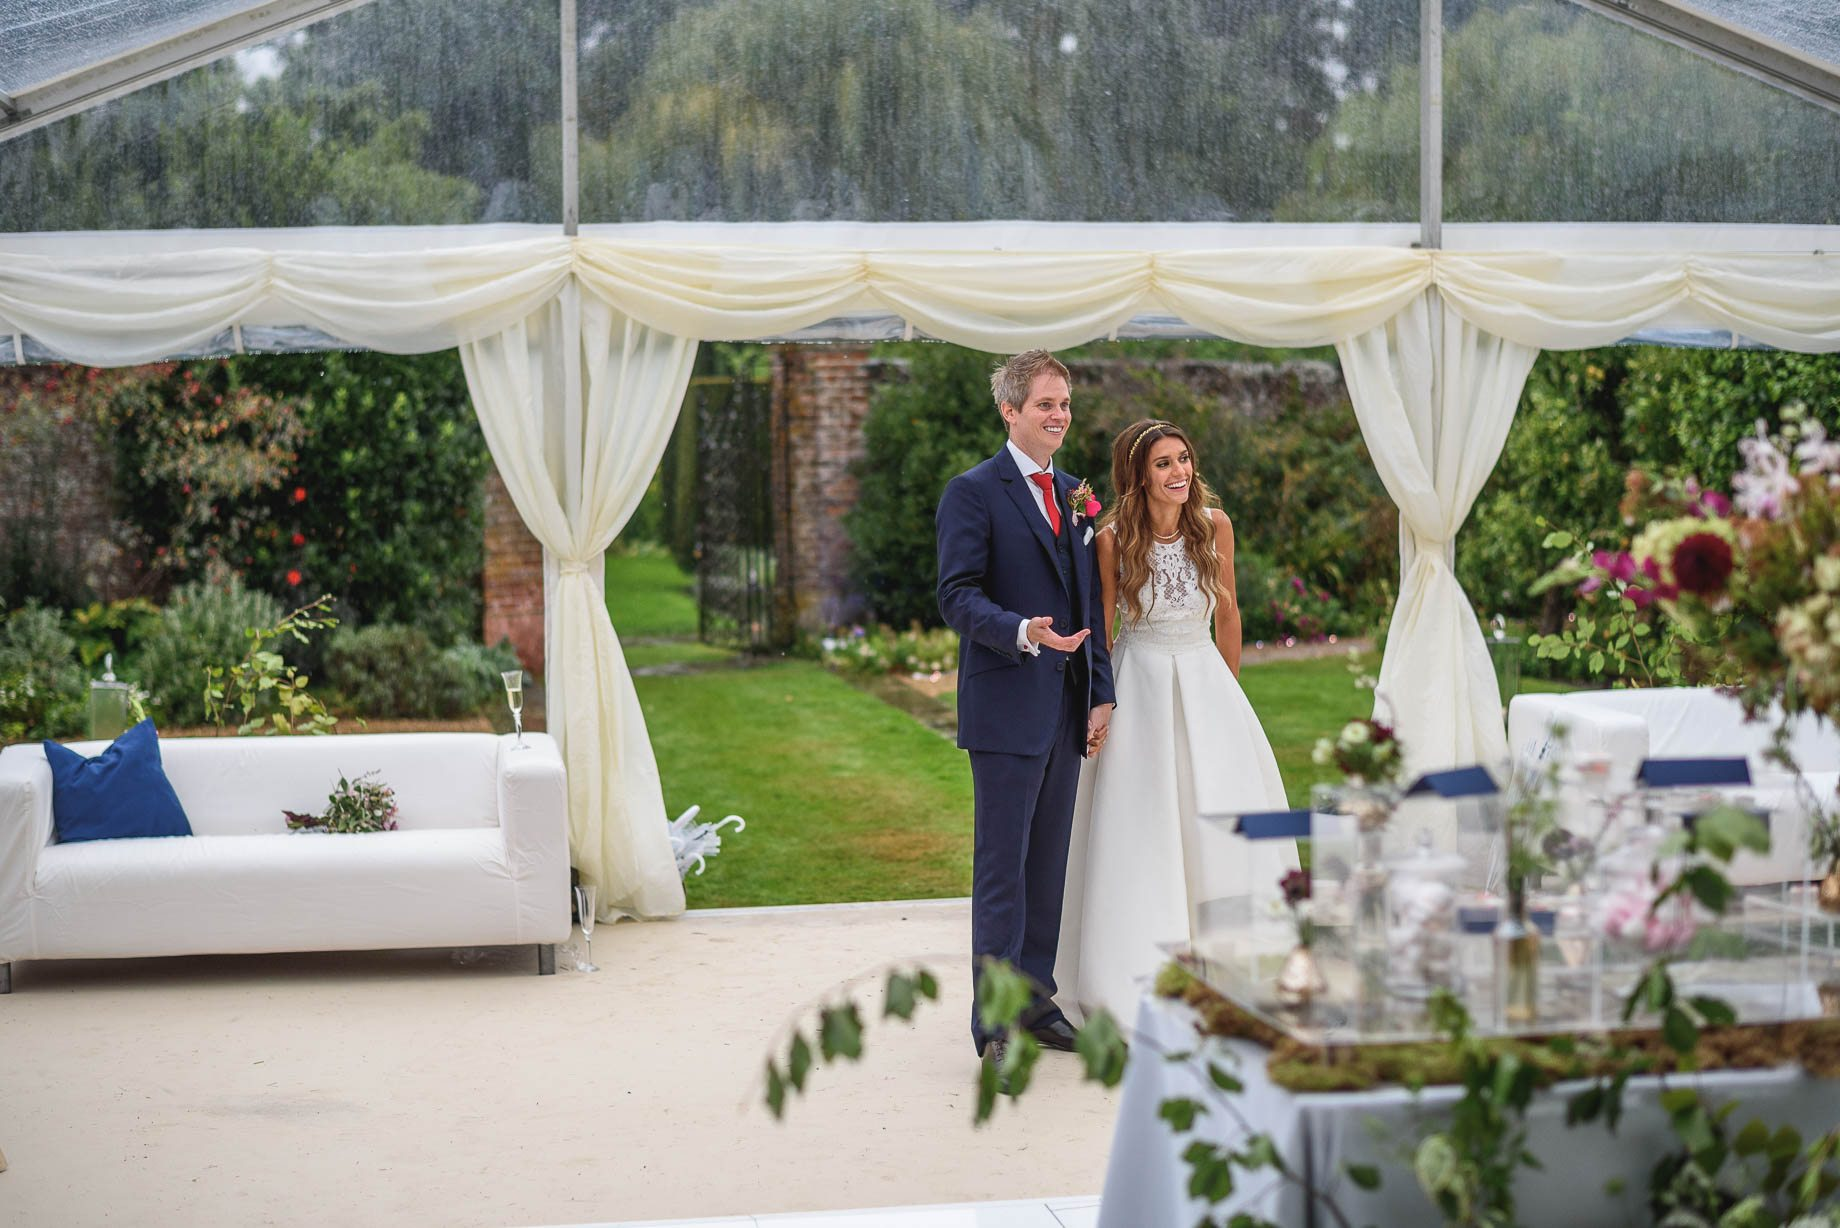 surrey-wedding-photography-guy-collier-photography-claire-and-tom-168-of-227